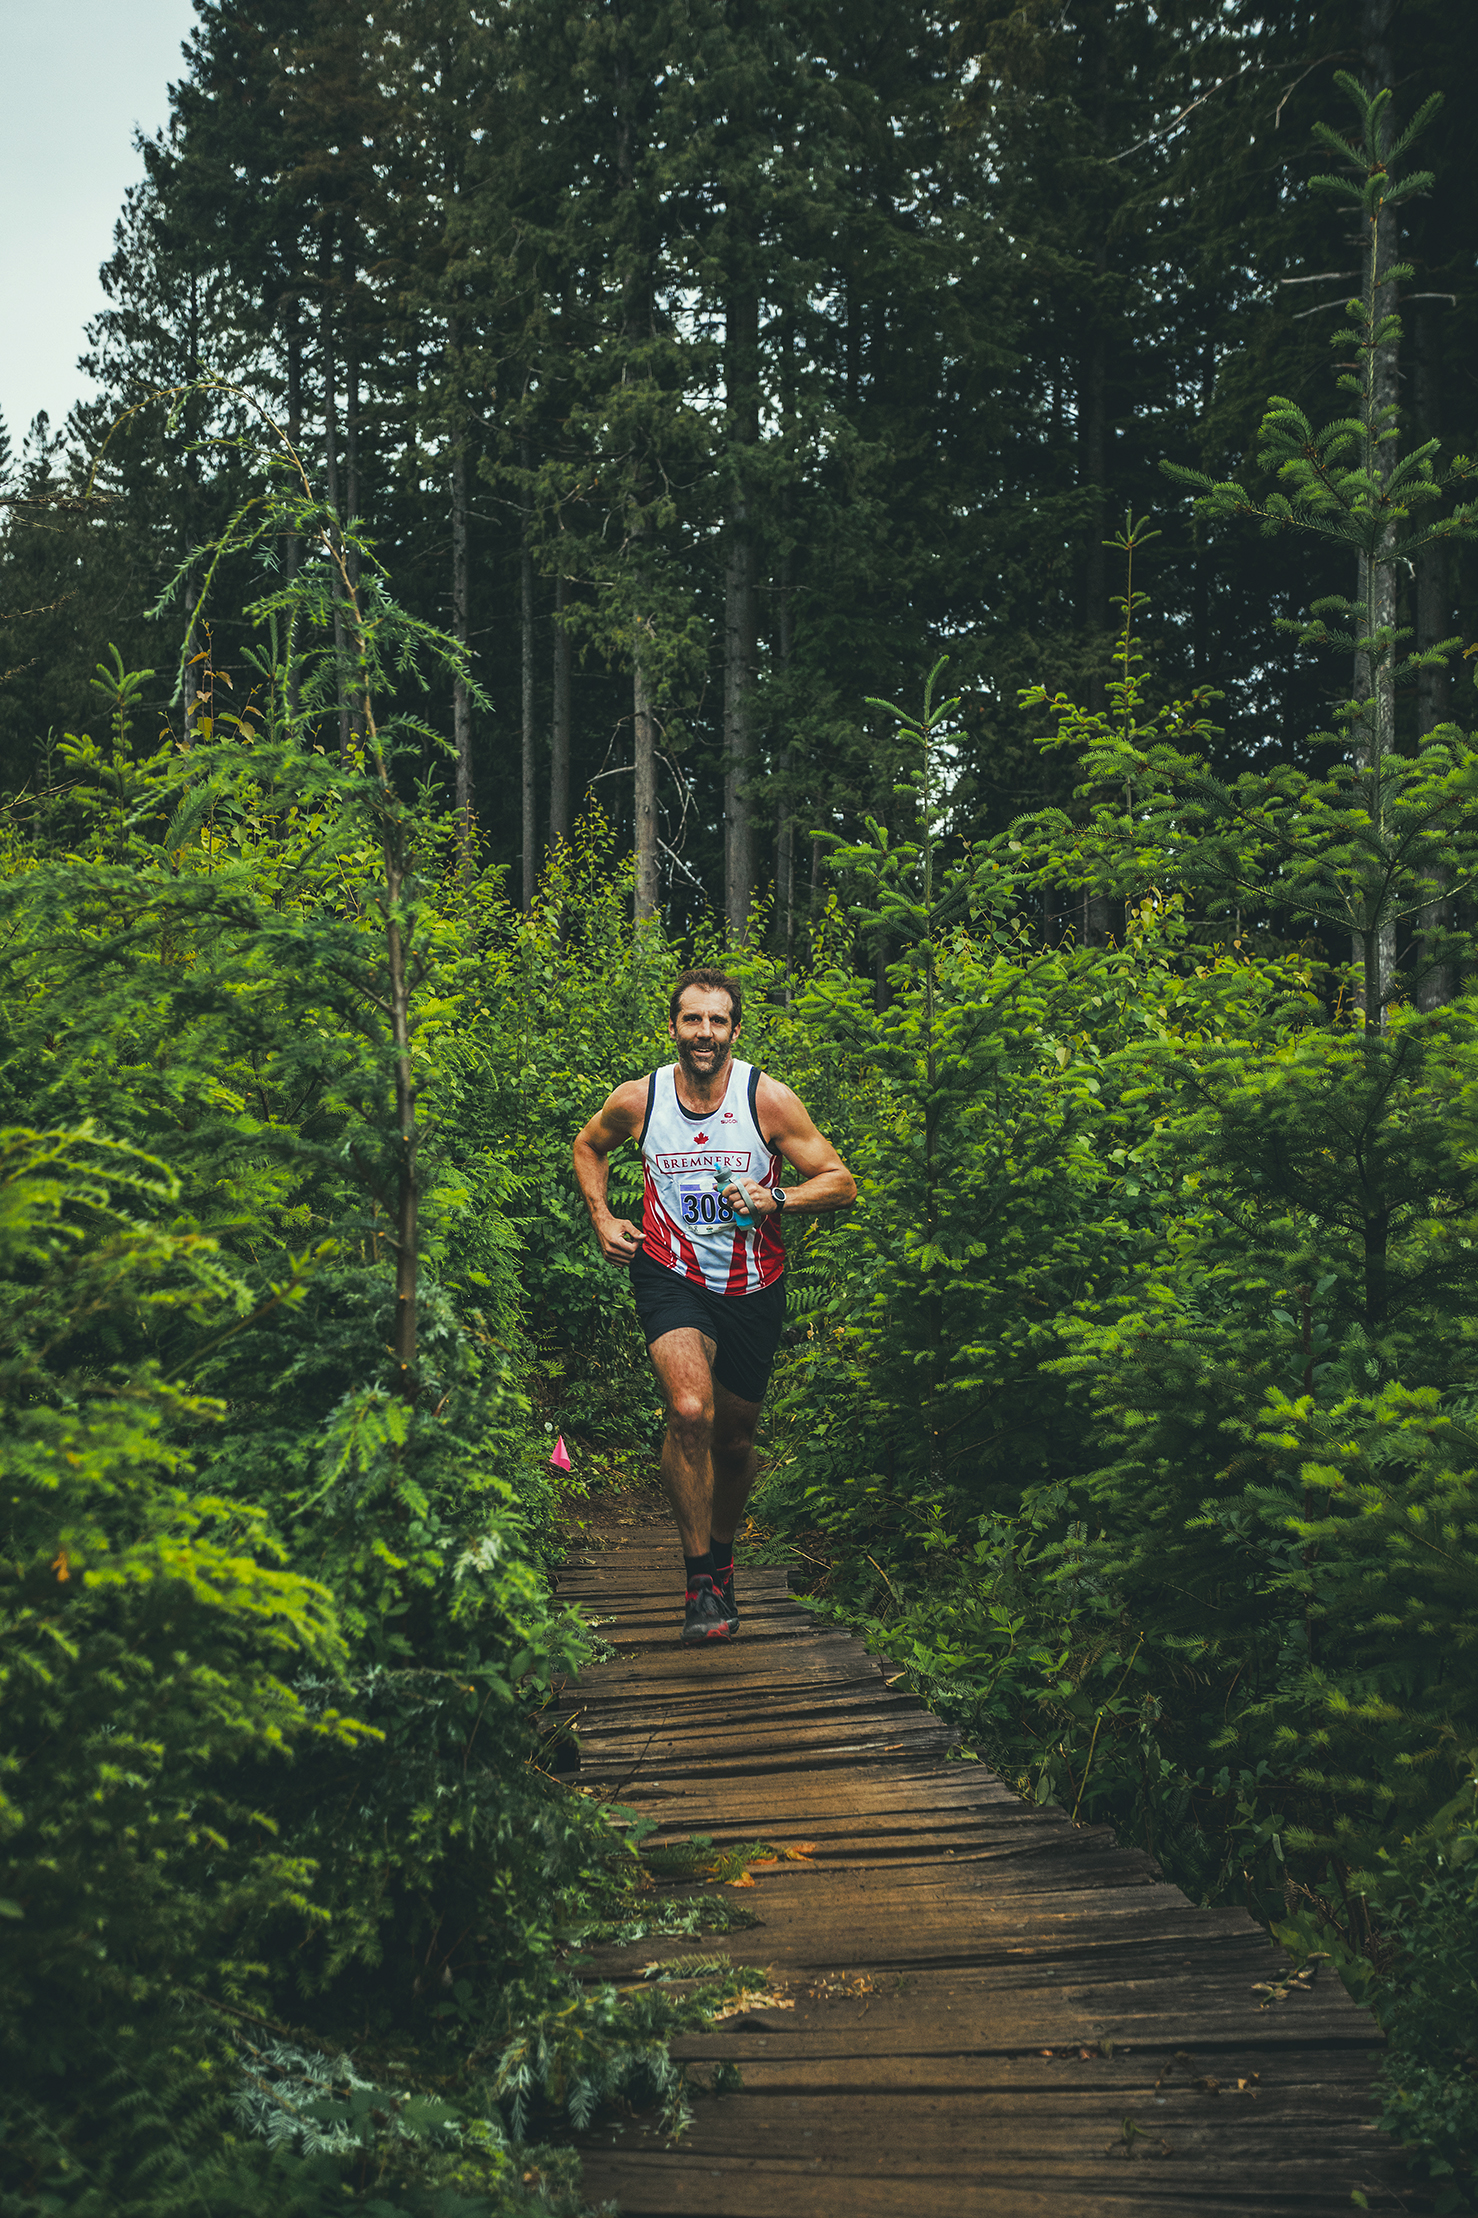 Fraser Valley Trail Races - Bear Mountain - IMG_1457 by Brice Ferre Studio - Vancouver Portrait Adventure and Athlete Photographer.jpg